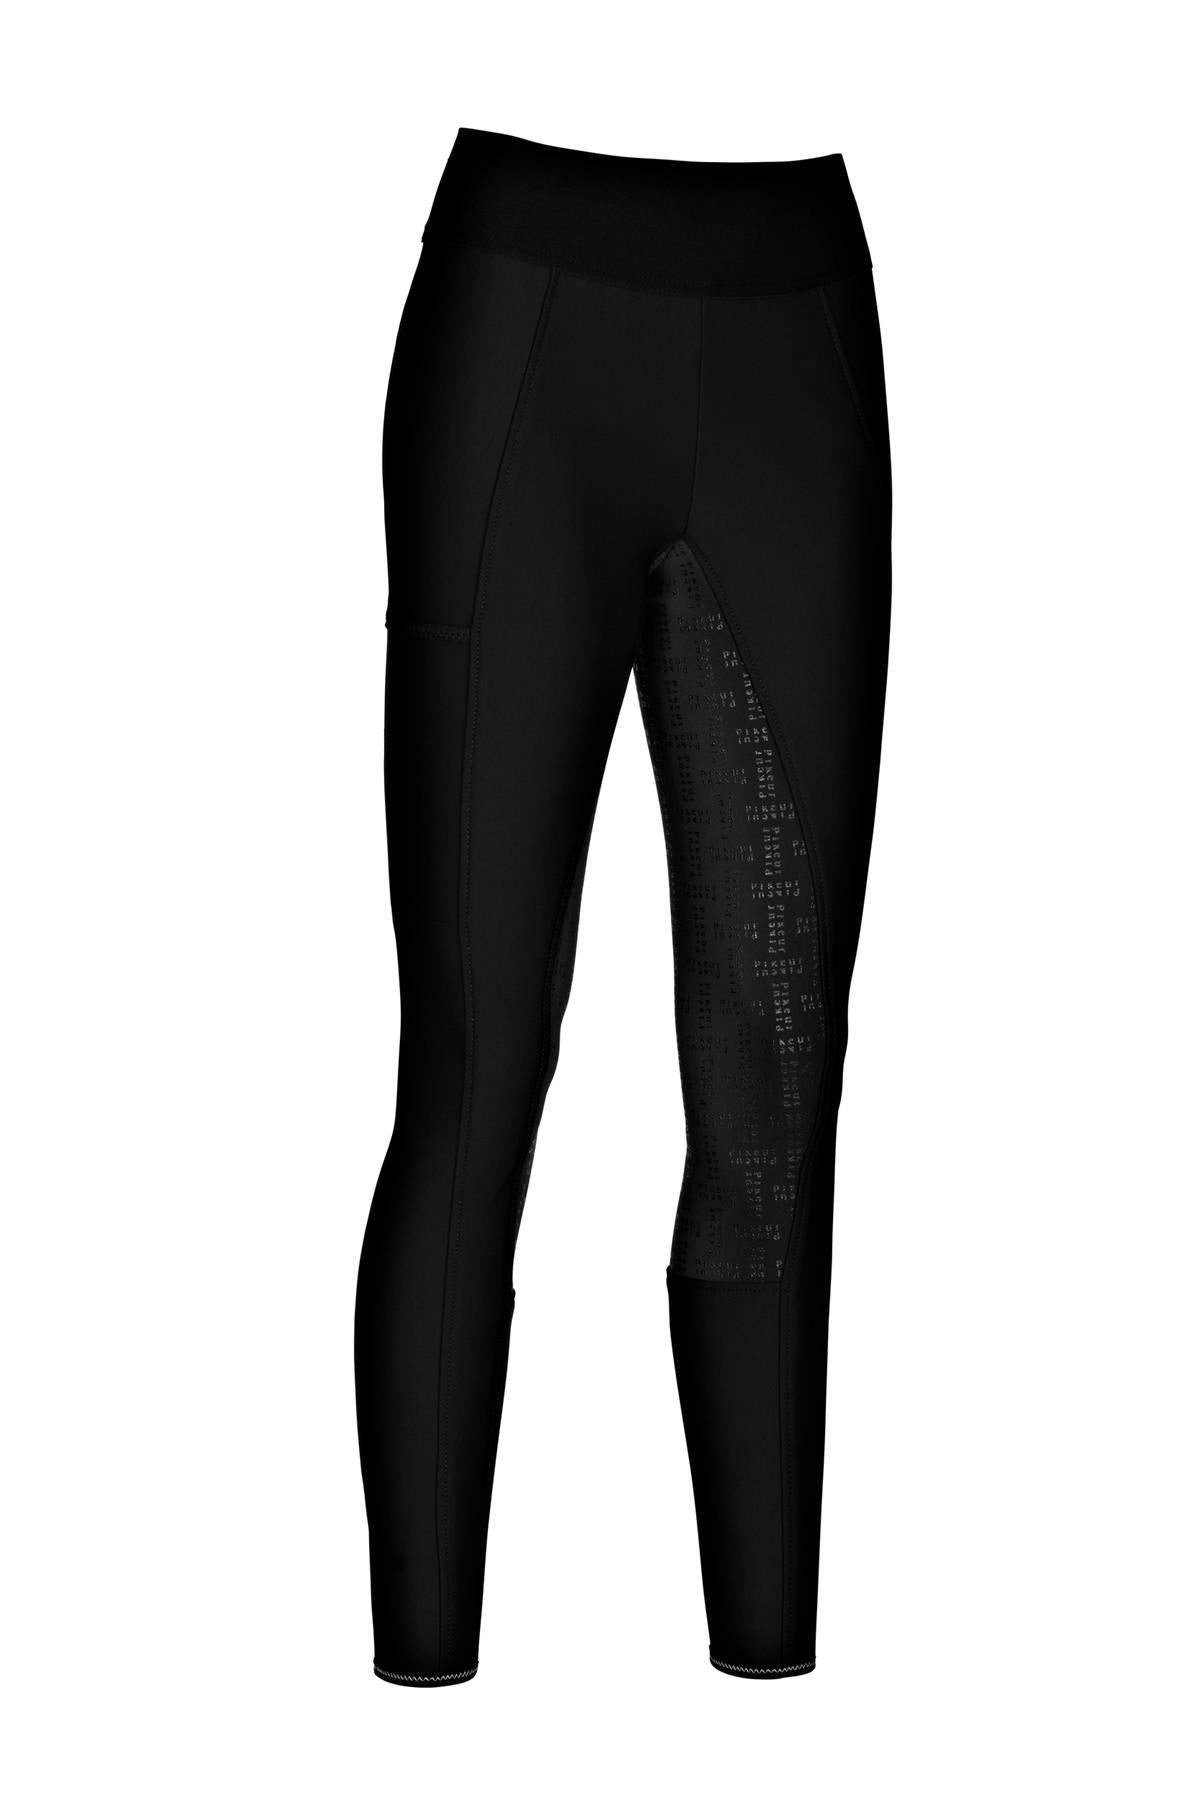 Pikeur Yara Grip Full Seat Women's Breeches